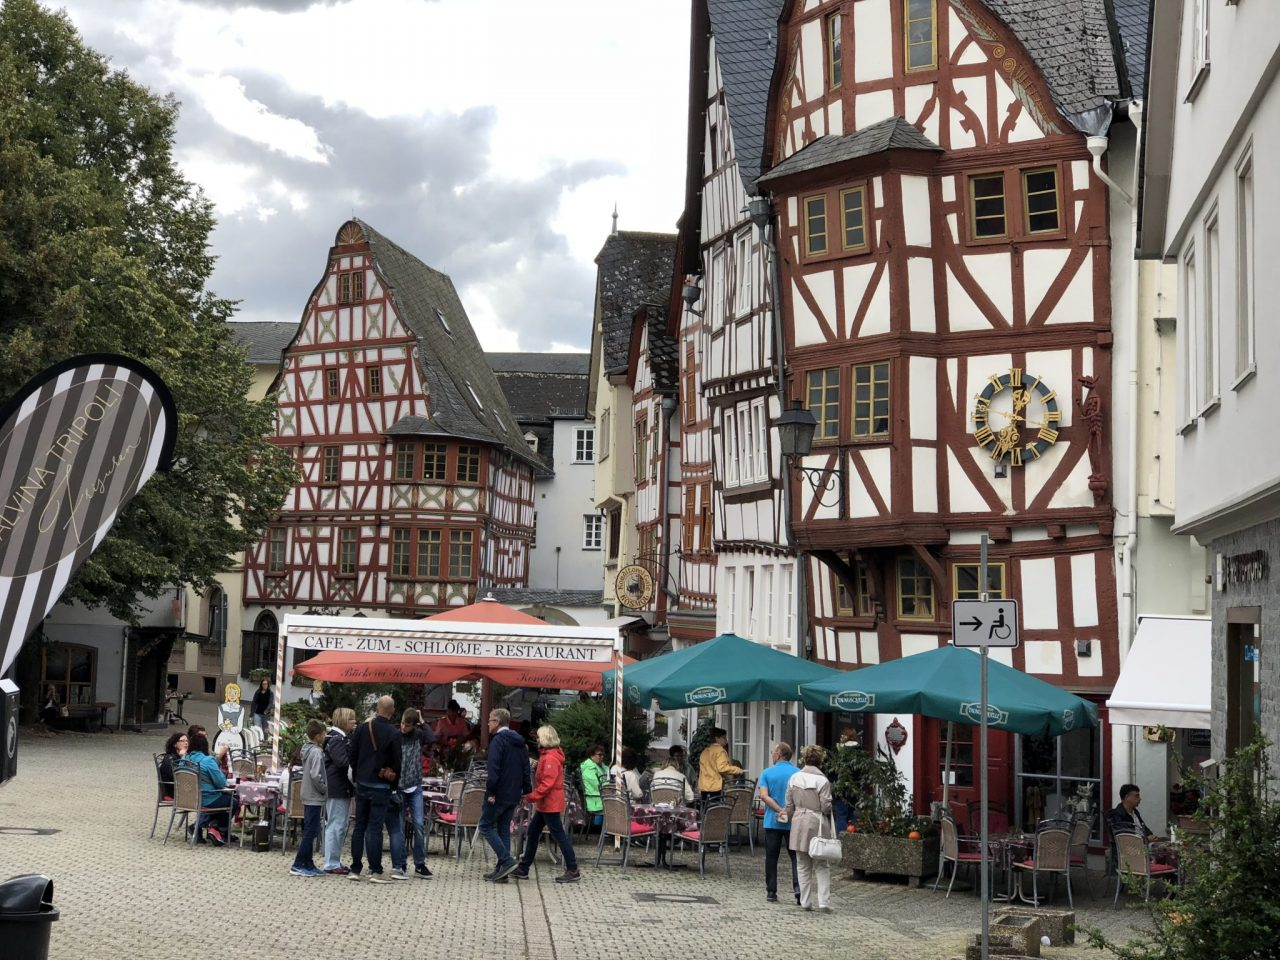 Limburg An Der Lahn Christmas Market 2020 Limburg an der Lahn • European Foodie and Travel Blog©